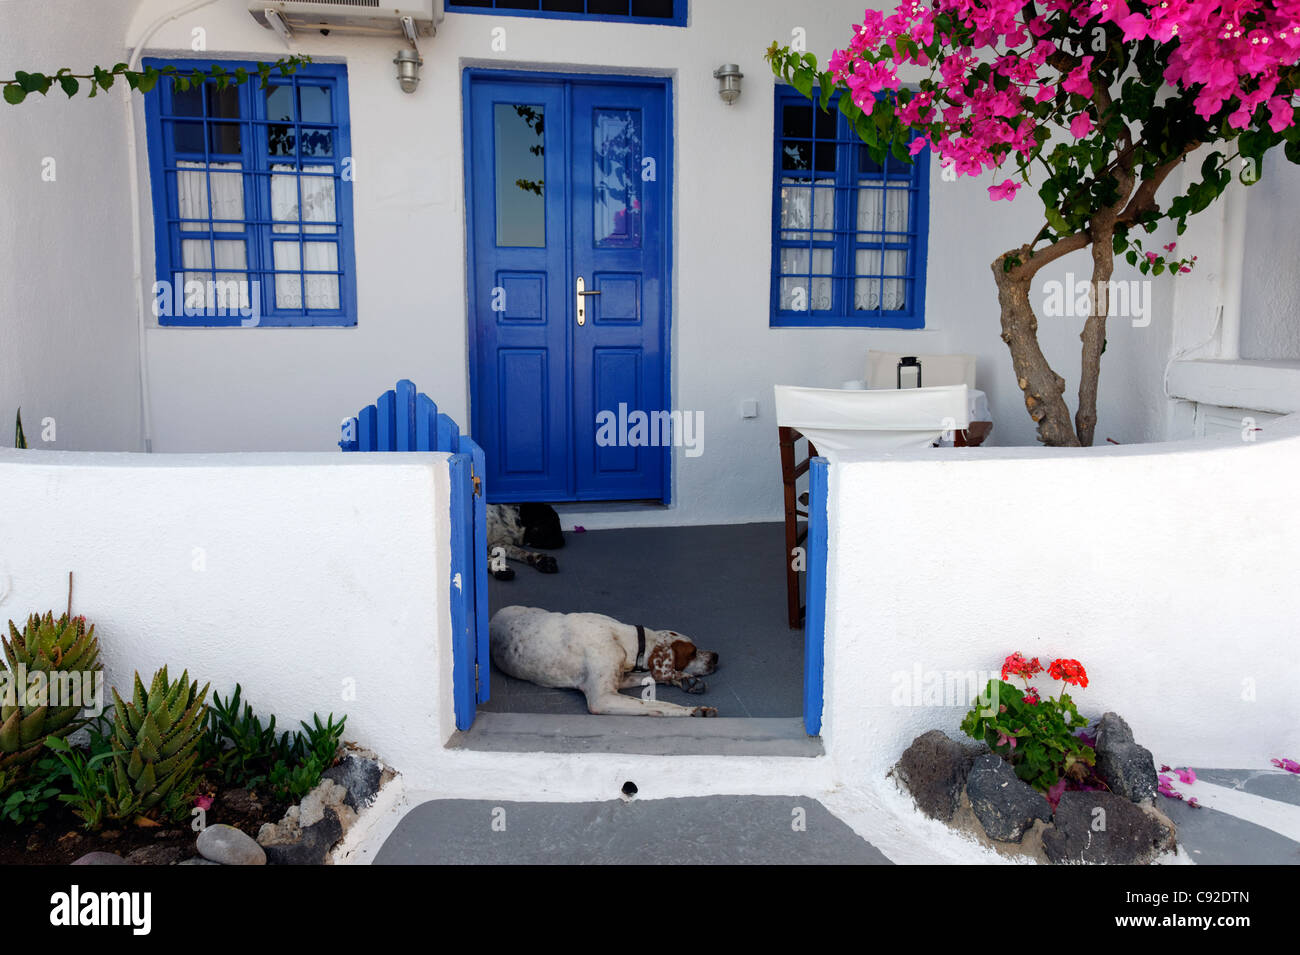 View of a Santorini whitewashed house with blue windows, blue door, blue picket gate, pink bougainvillea and two - Stock Image